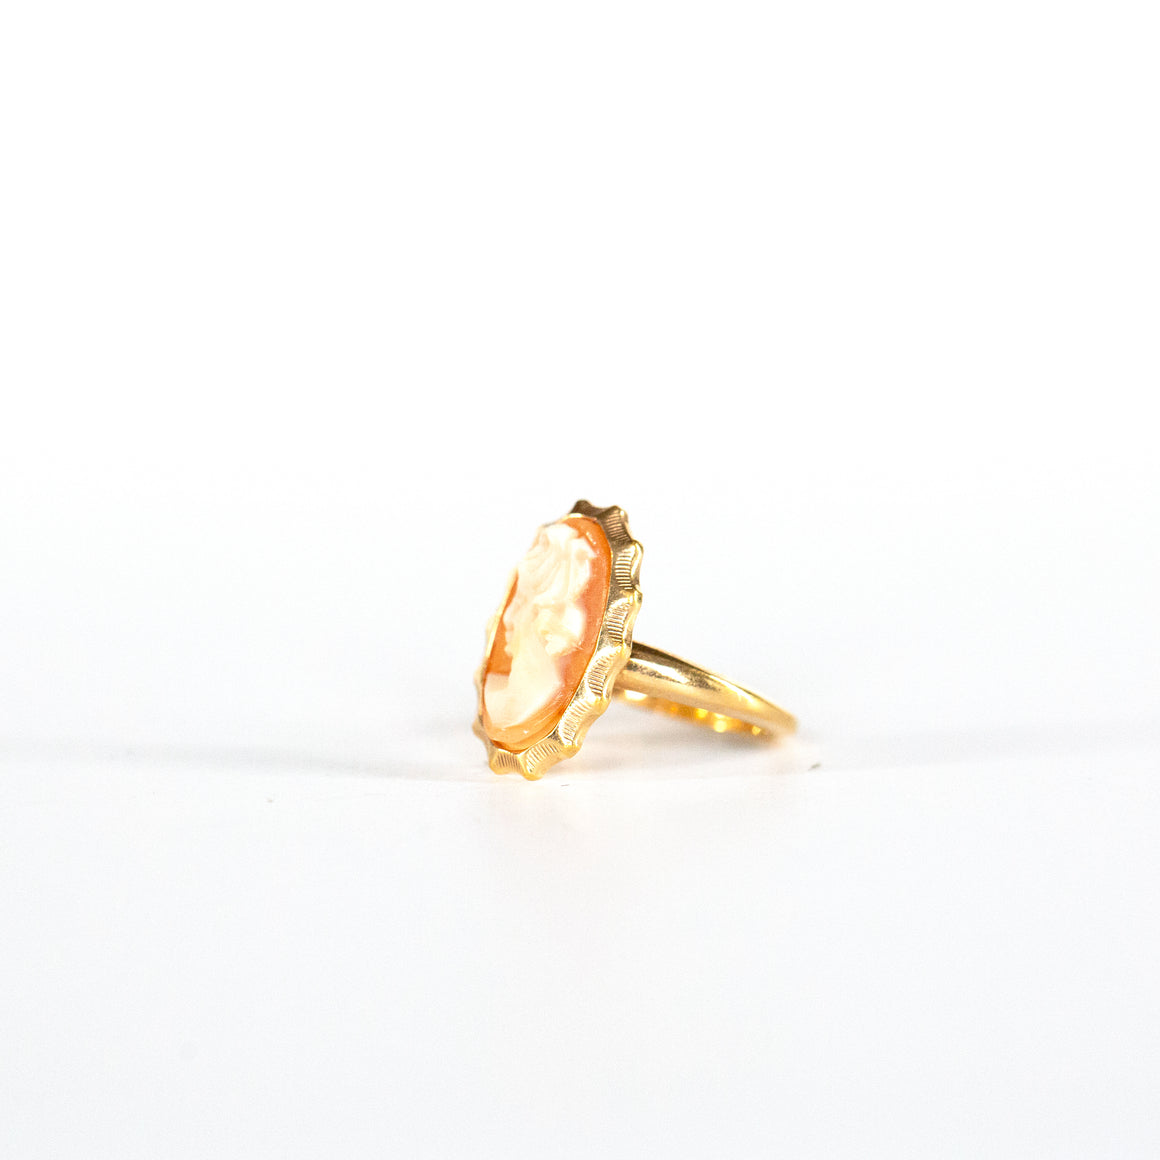 VINTAGE JEWELRY | GOLD-FILLED SARAH COVENTRY CAMEO RING (SIZE 4.5)